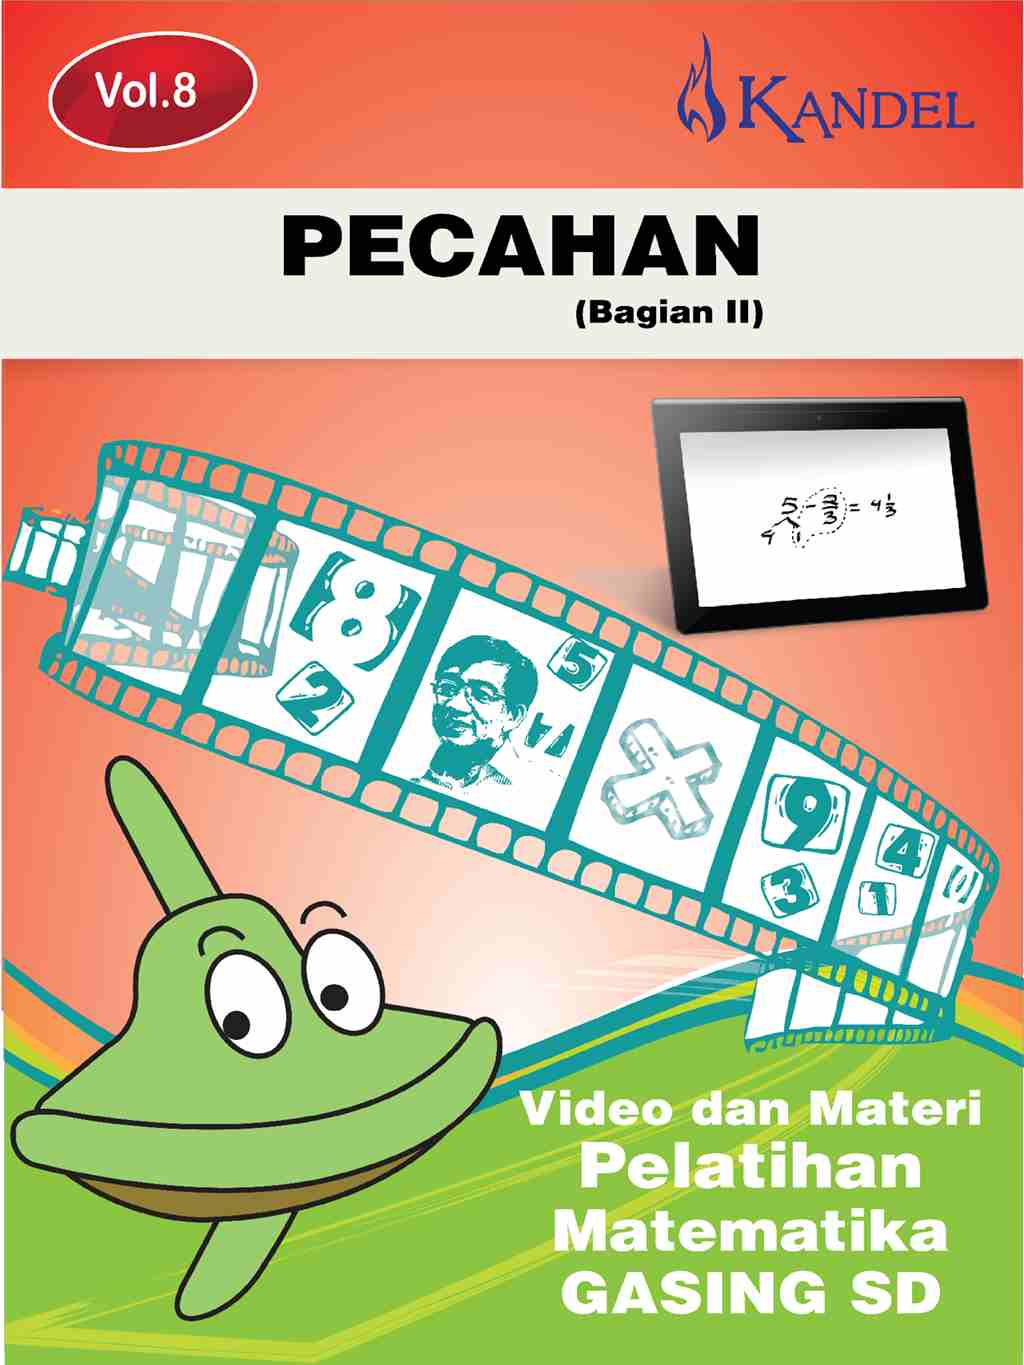 Vol 8 Video Tutorial Pelatihan Matematika Gasing - SD